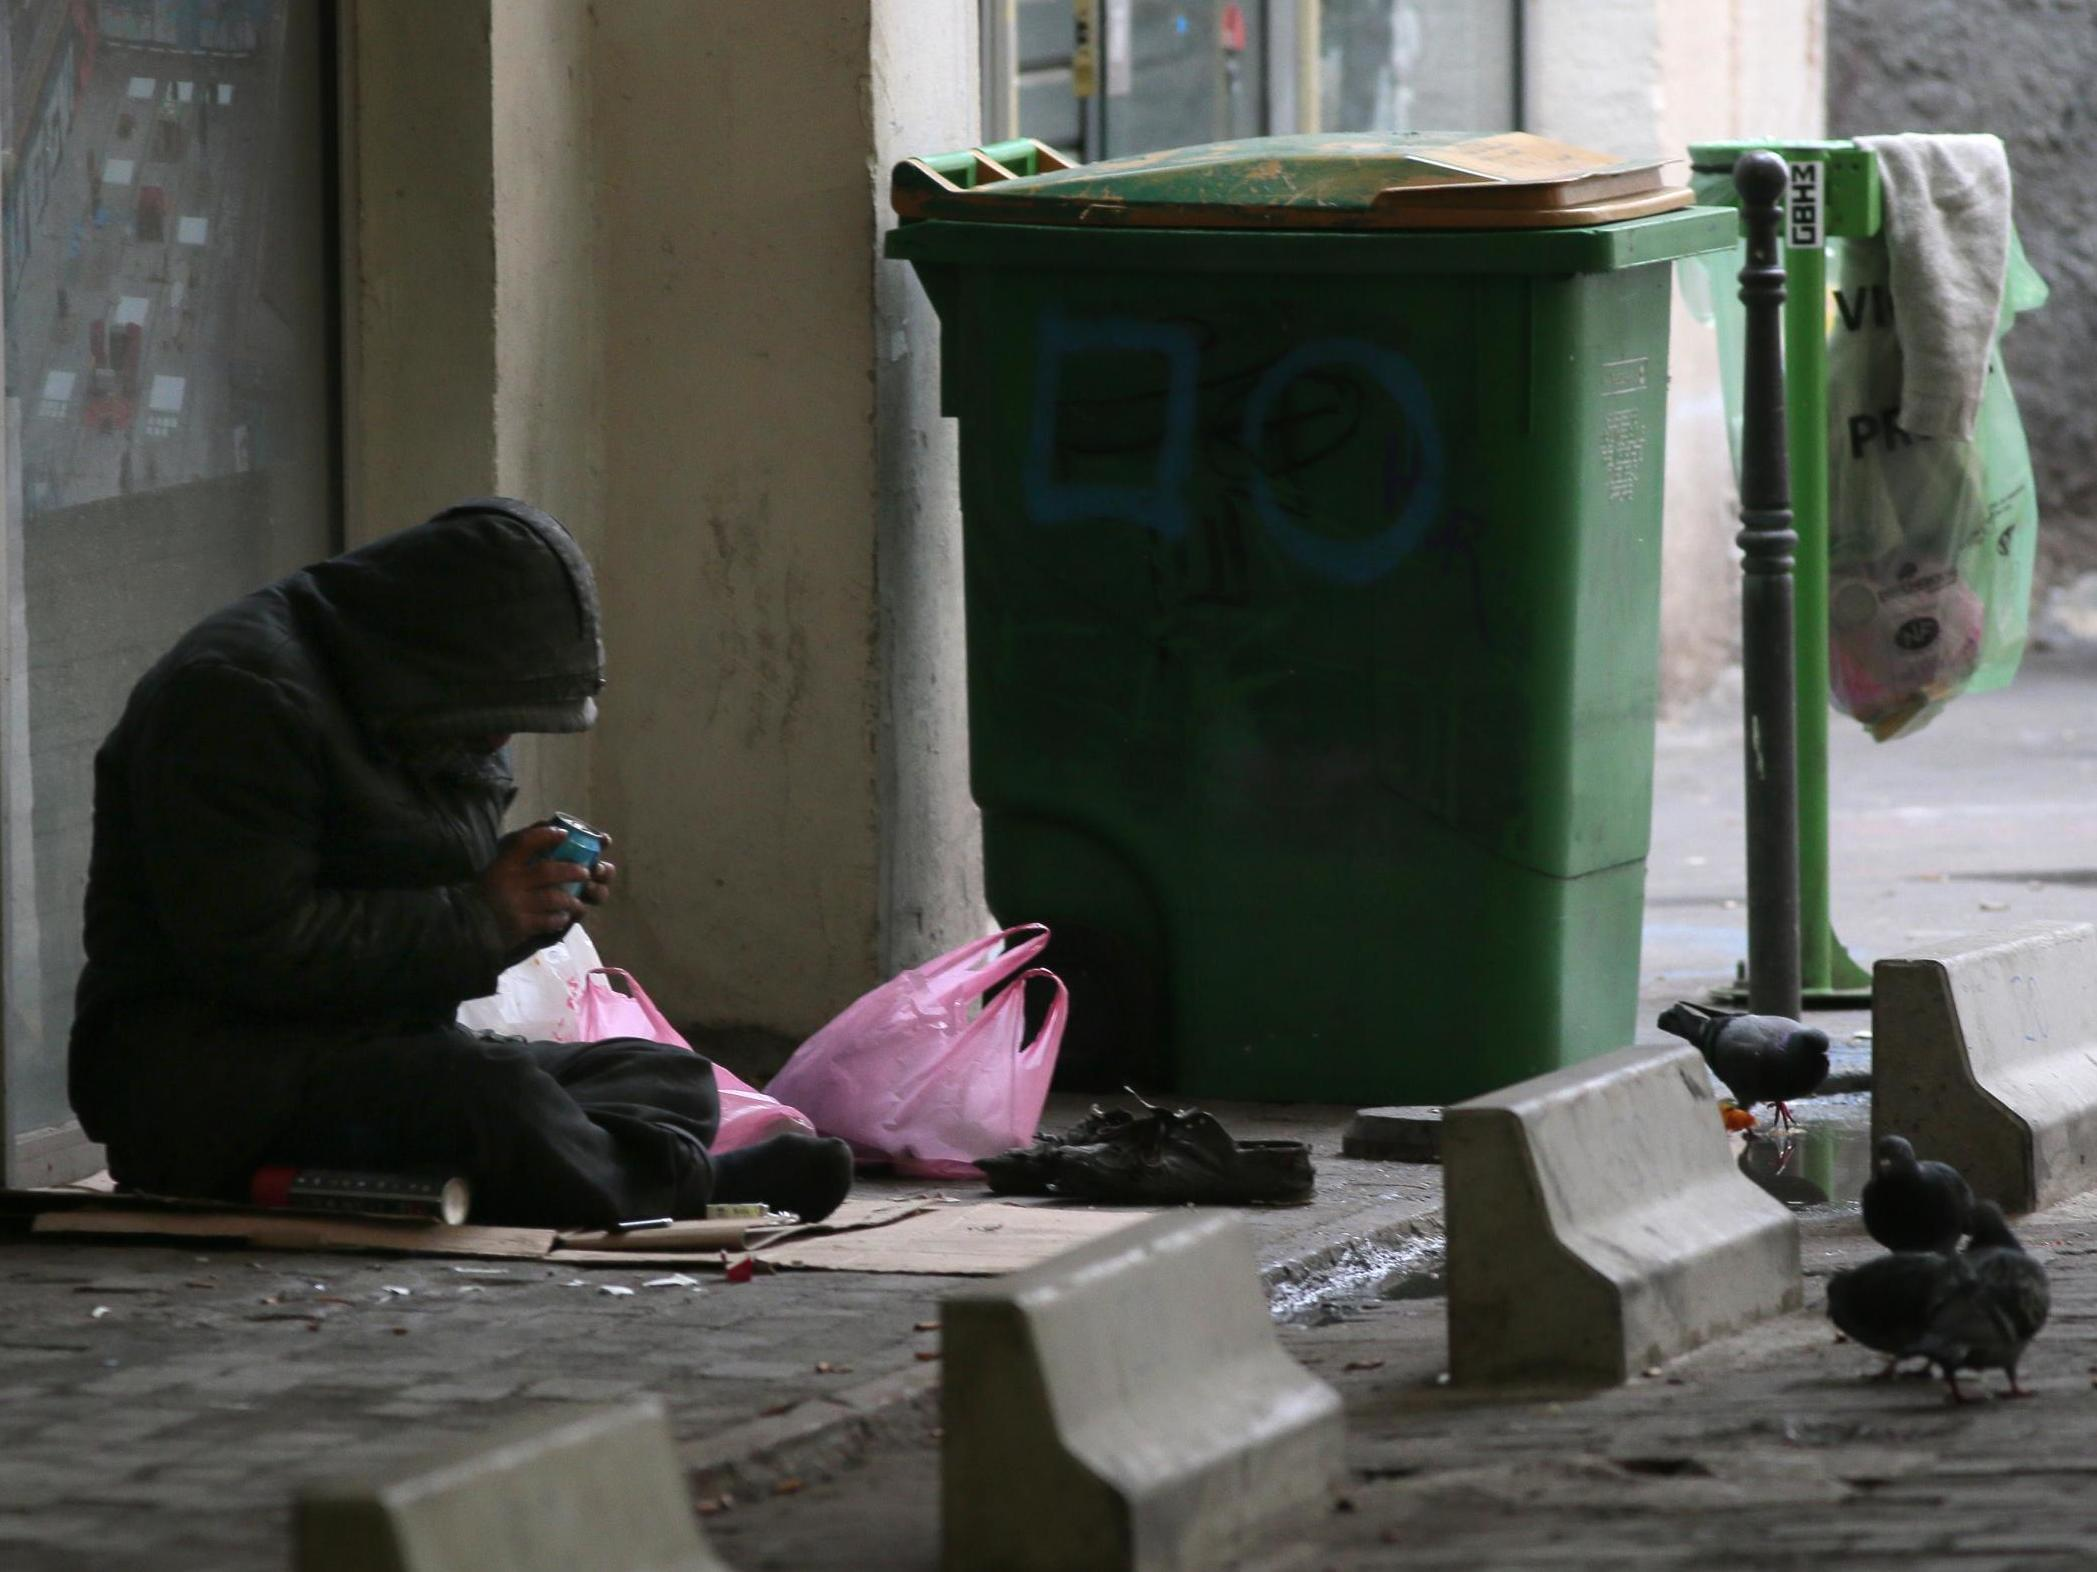 World's first 'human detector' to protect homeless people sleeping i…